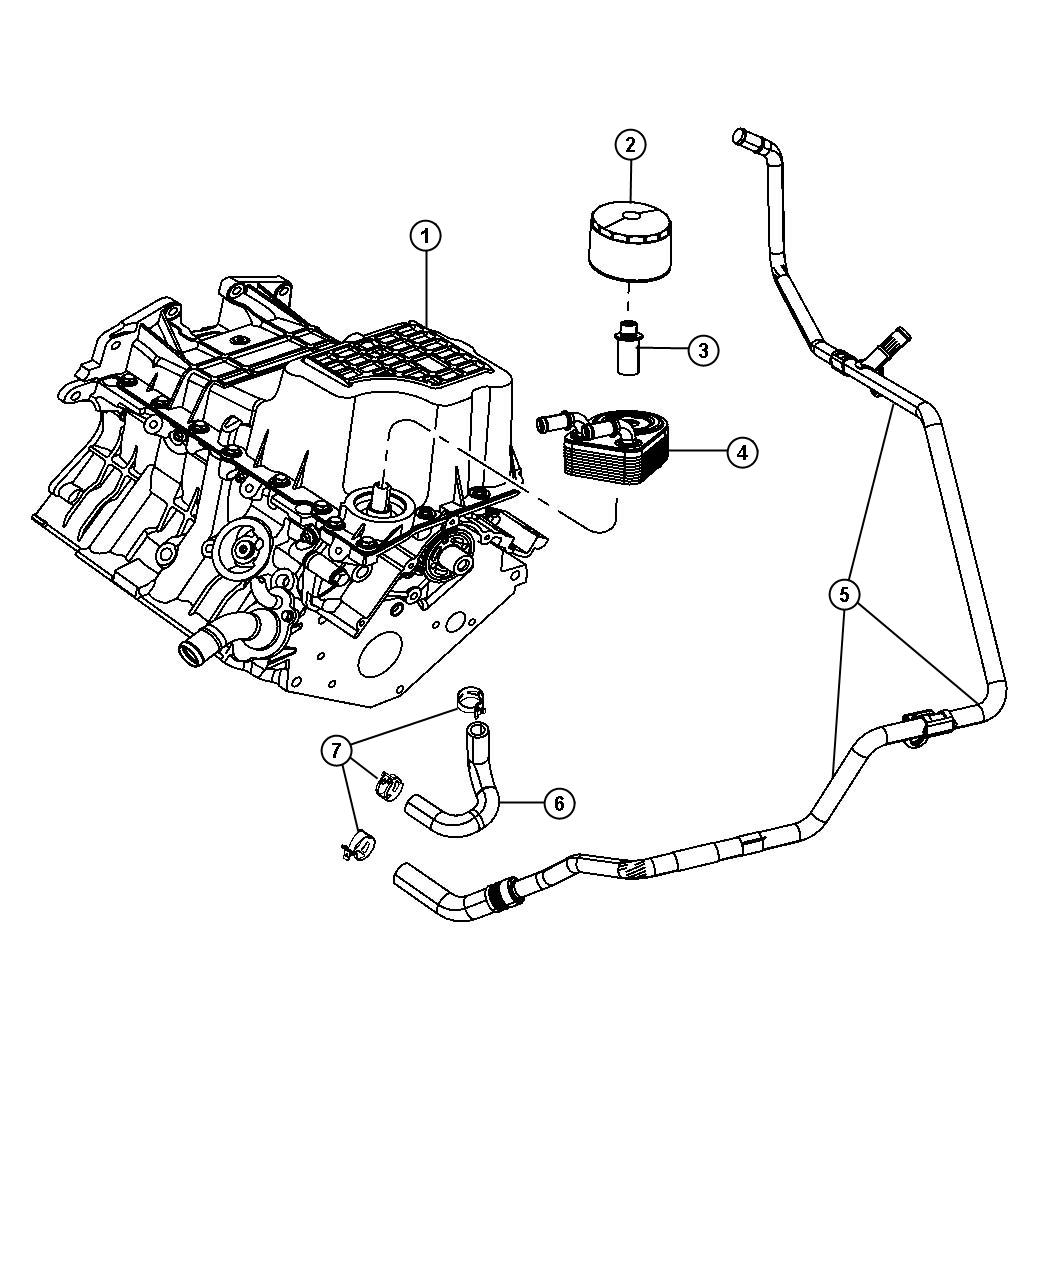 2 7 Liter Chrysler Engine Diagram